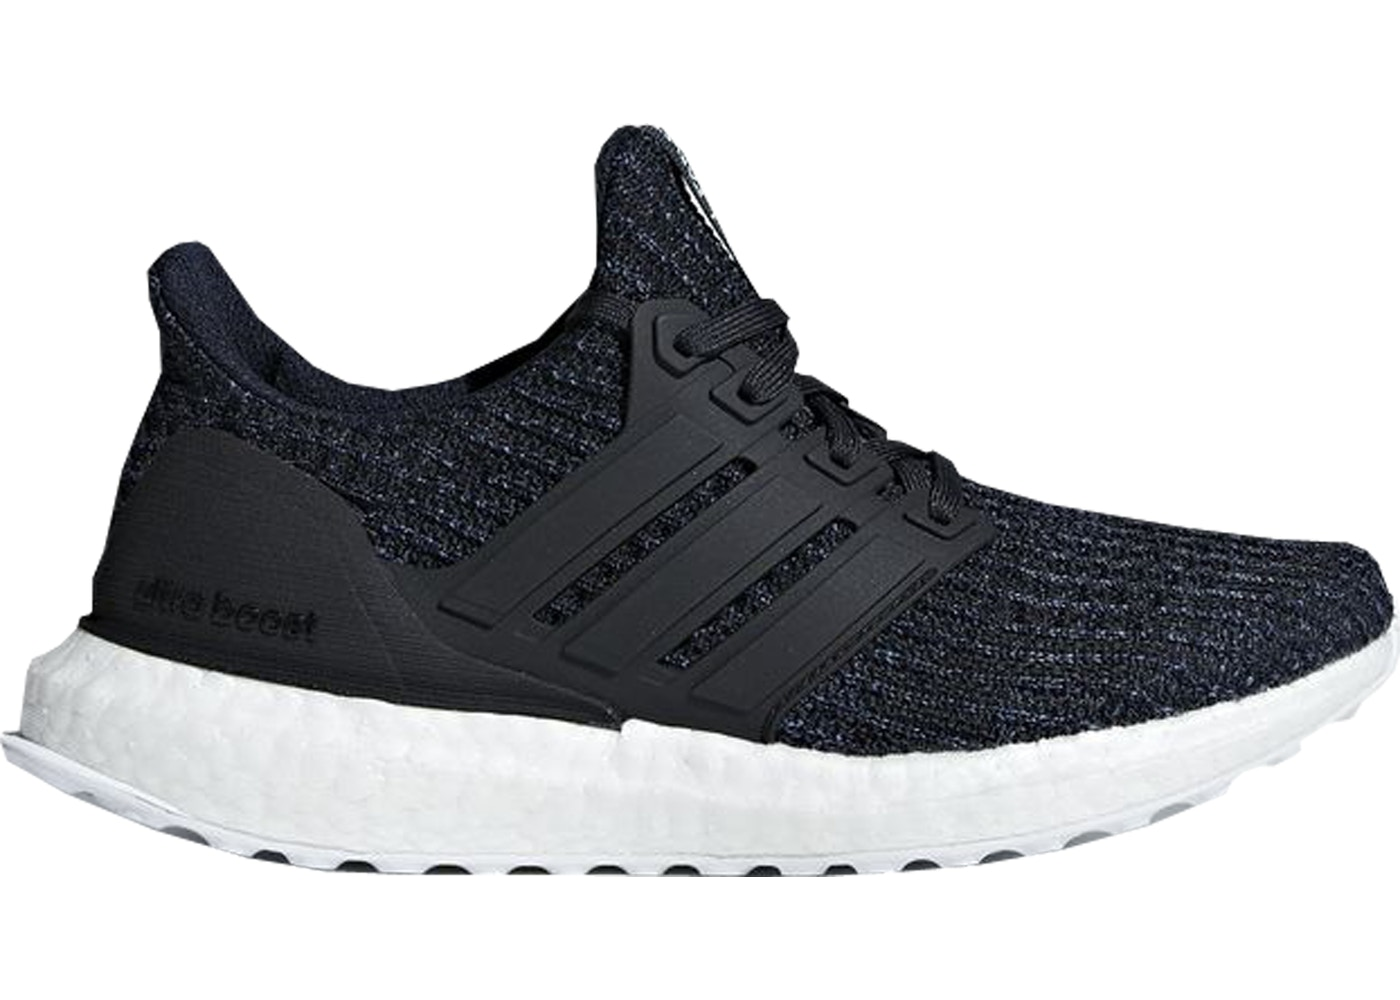 adidas Ultra Boost 4.0 Carbon White | CM8116 | sports